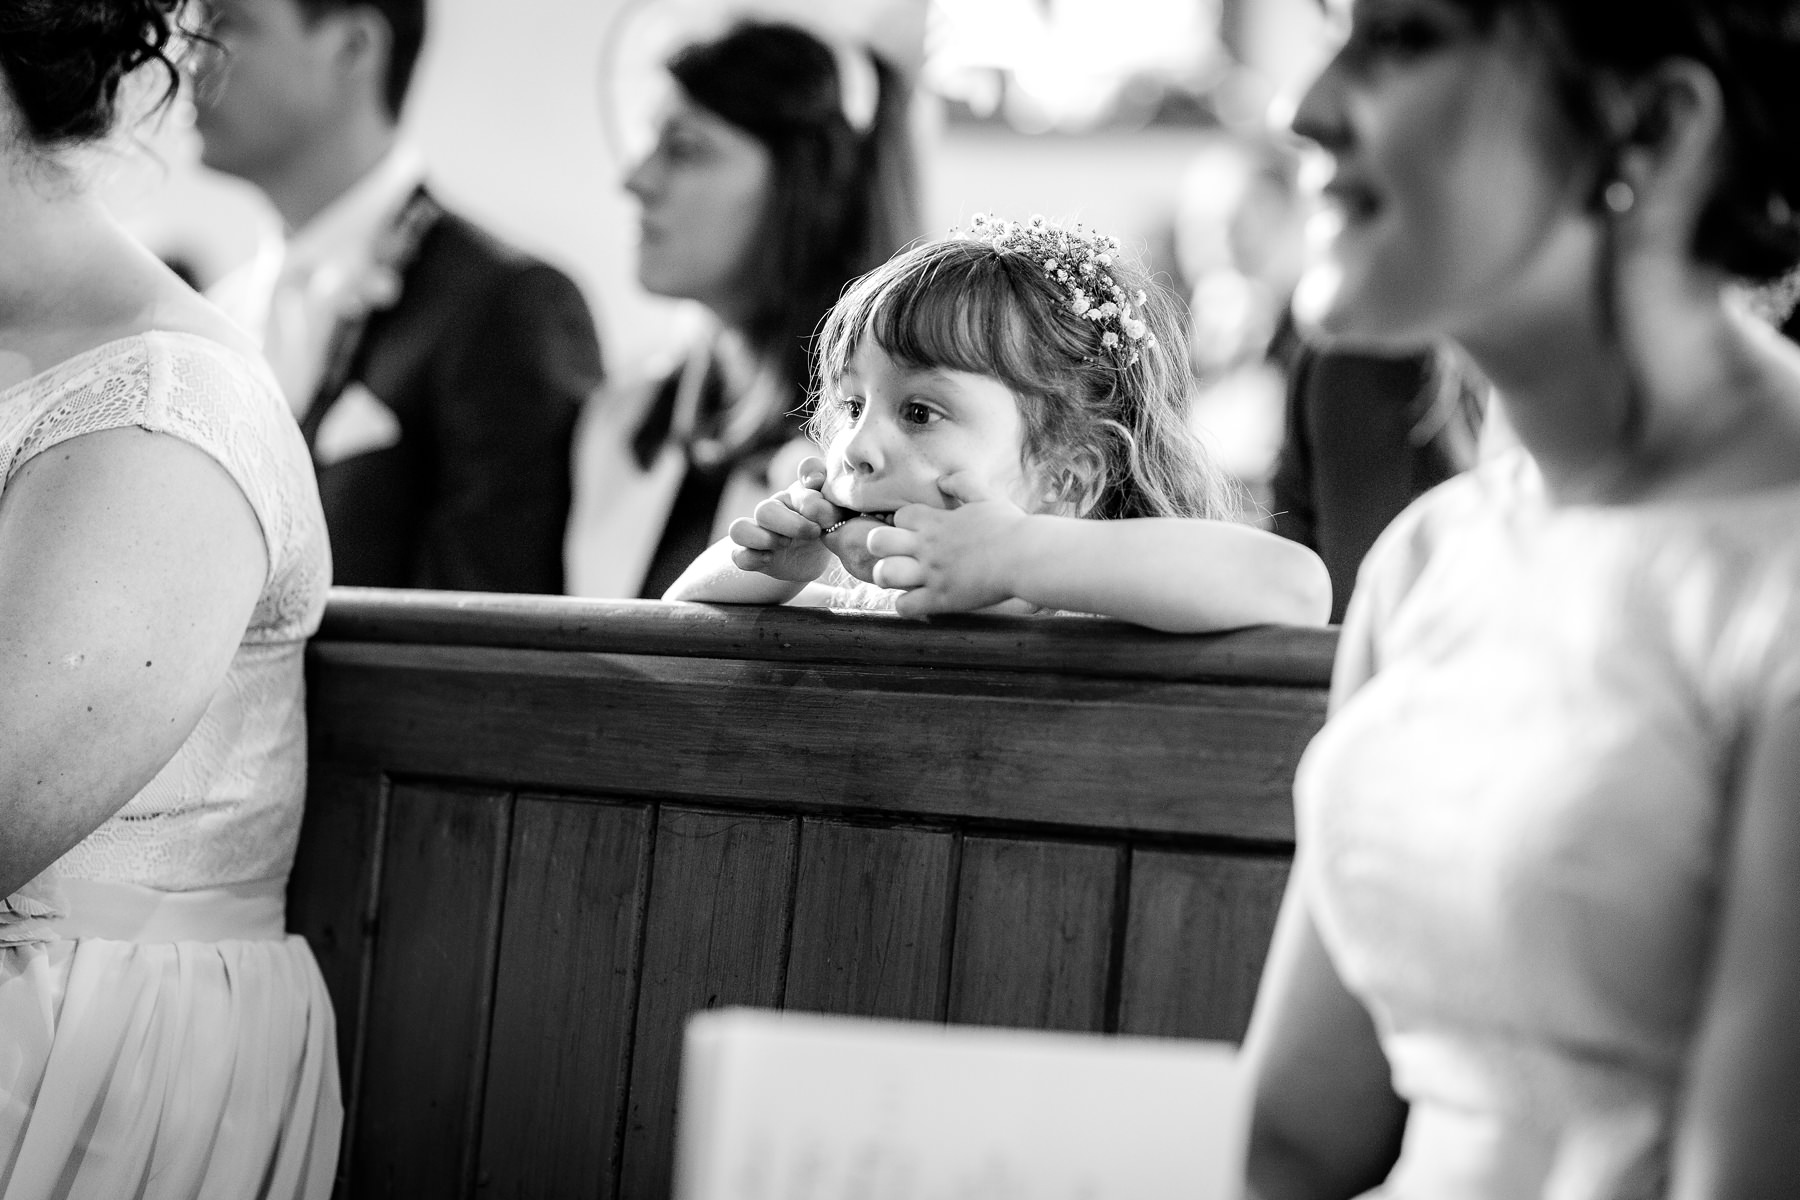 girl pulling face during service